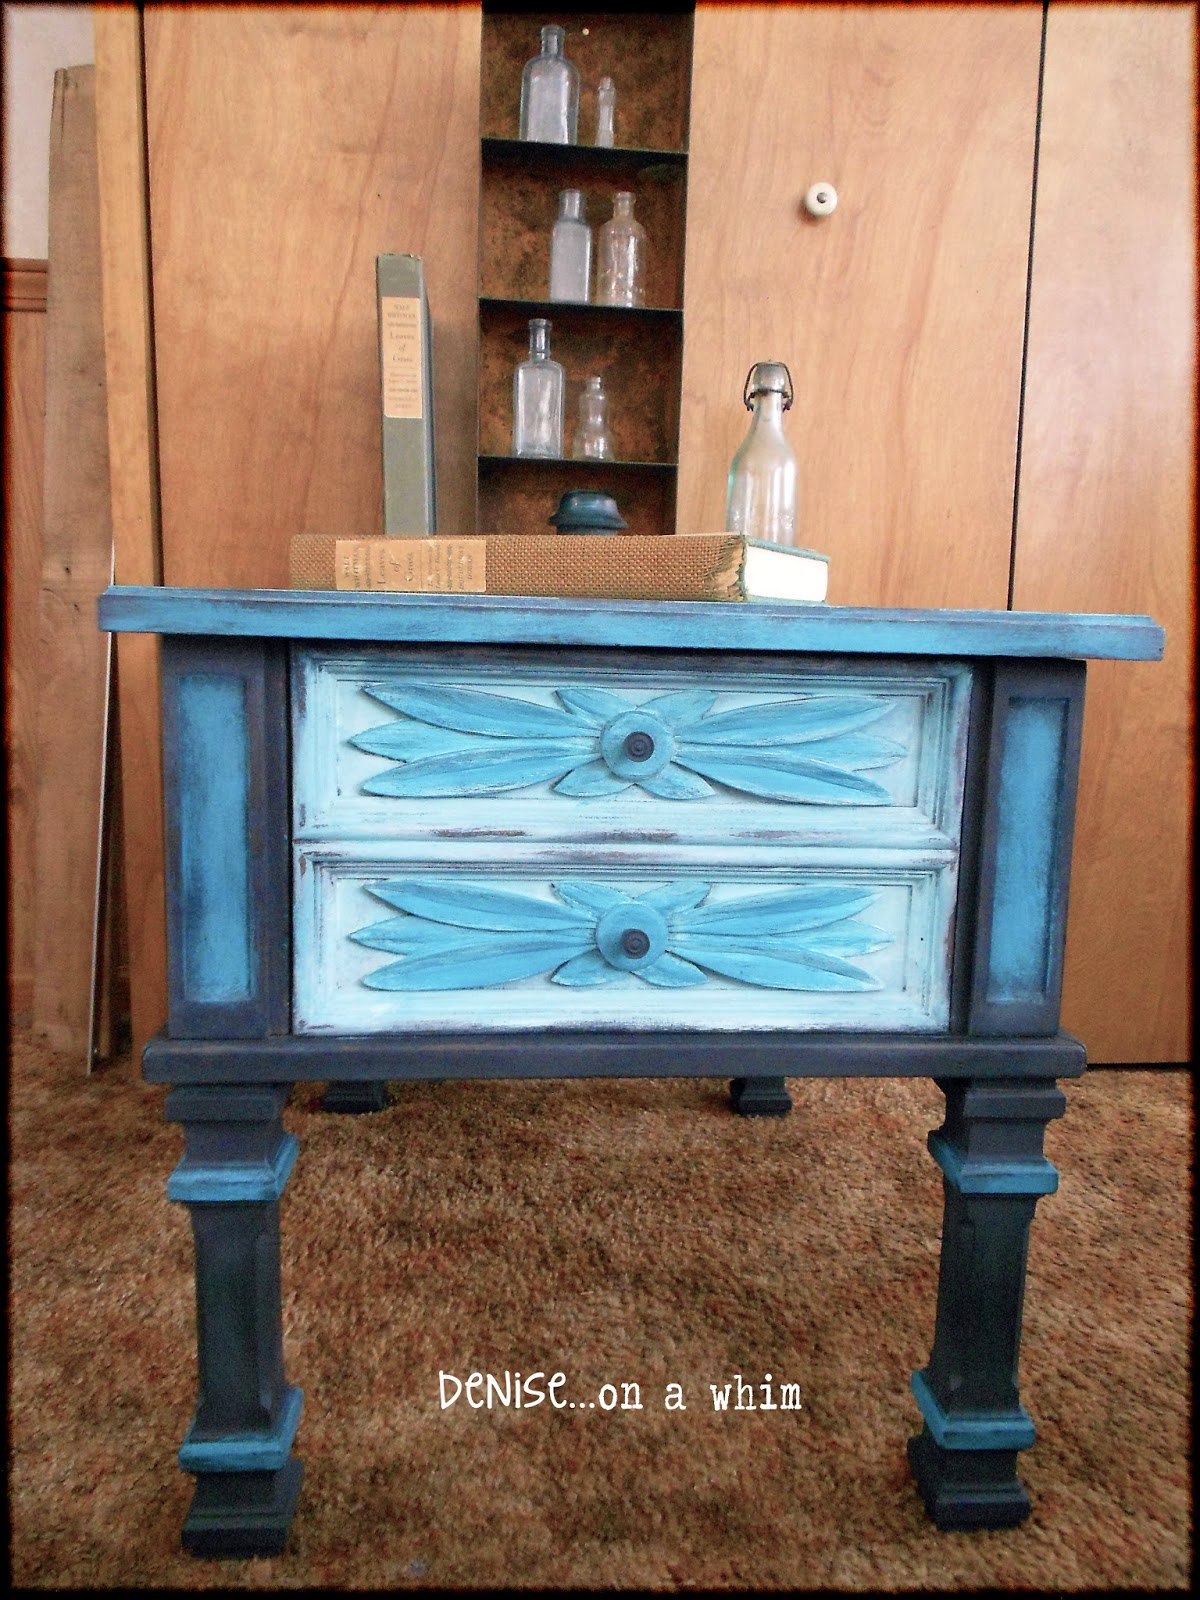 A beautiful end table transformation via http://deniseonawhim.blogspot.com